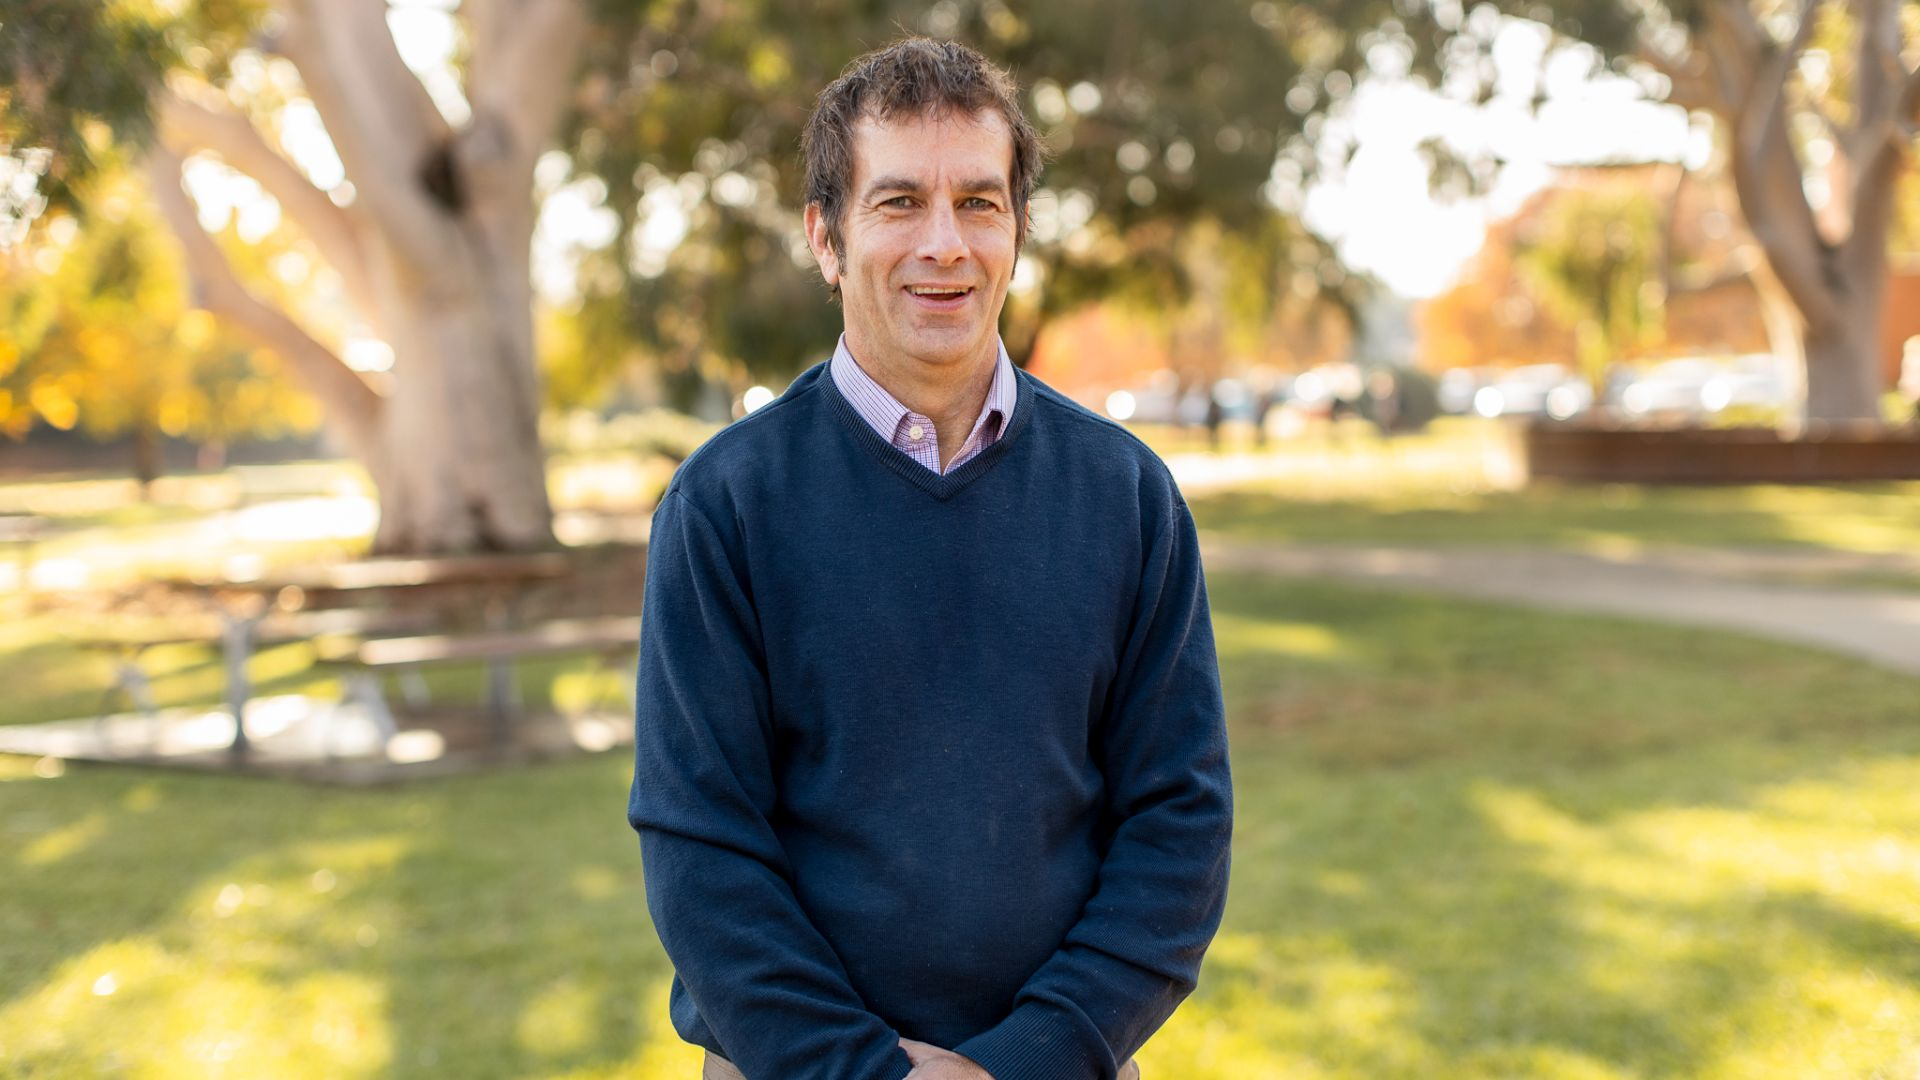 Charles Sturt establishes Agriculture, Water and Environment Institute to drive impactful research